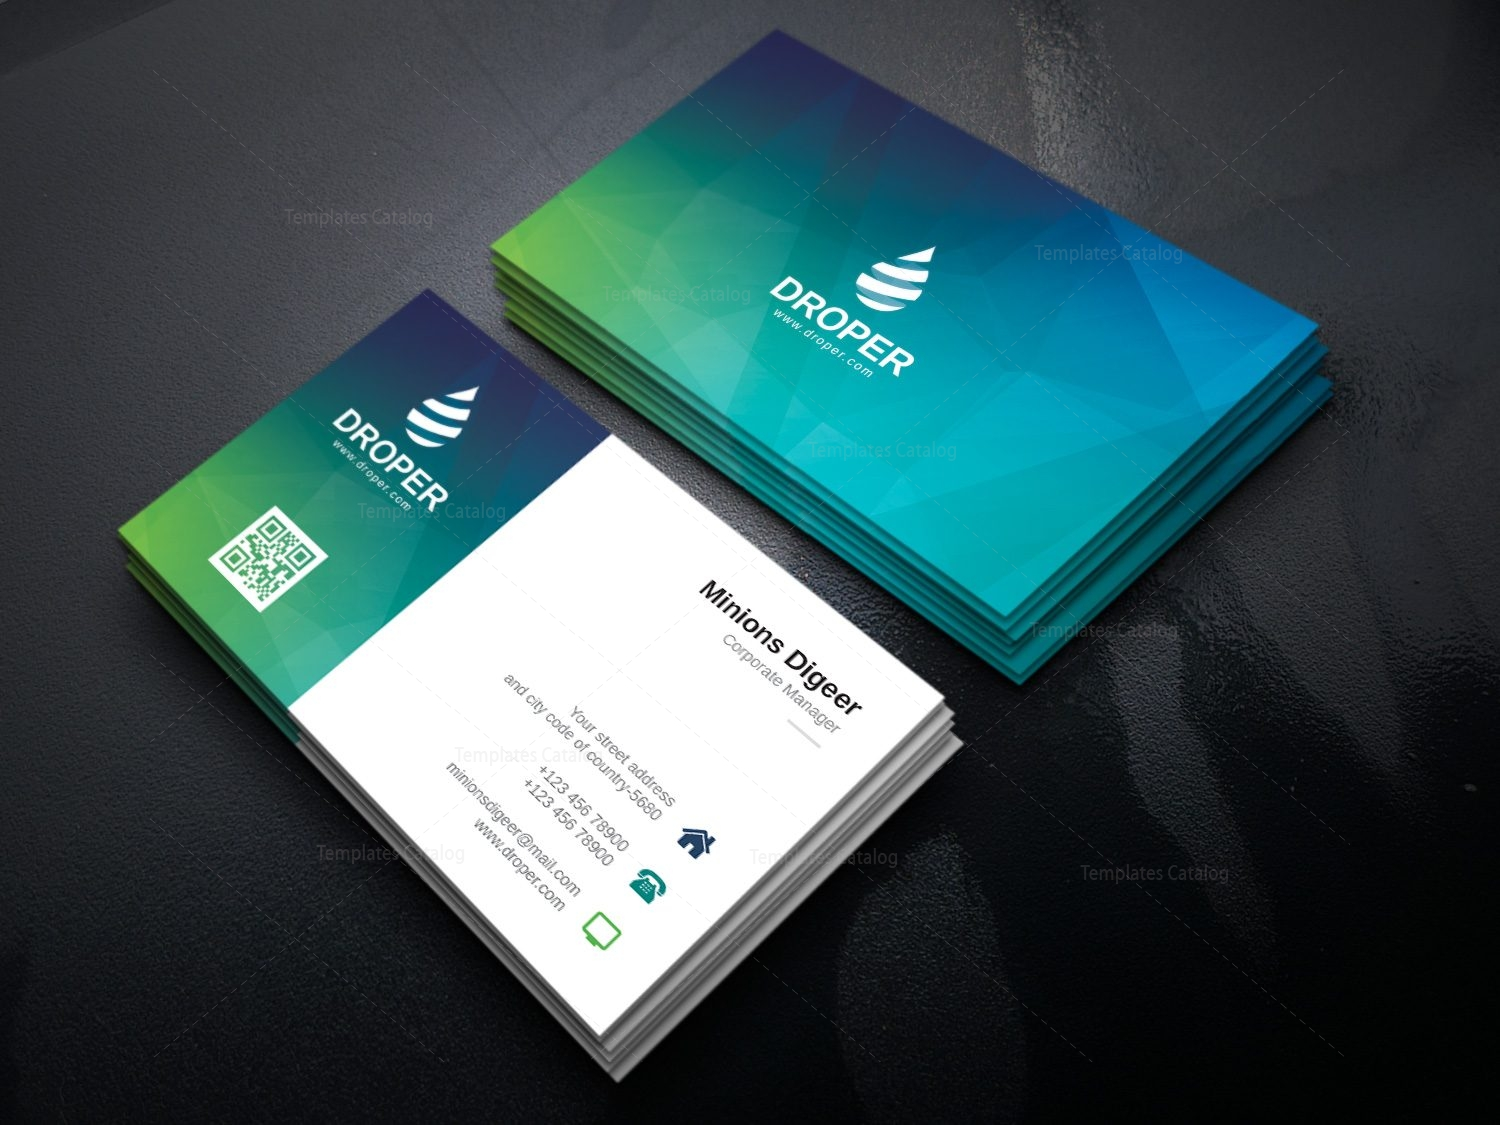 Dolphin modern corporate business card template 000924 template dolphin modern corporate business card template 3 accmission